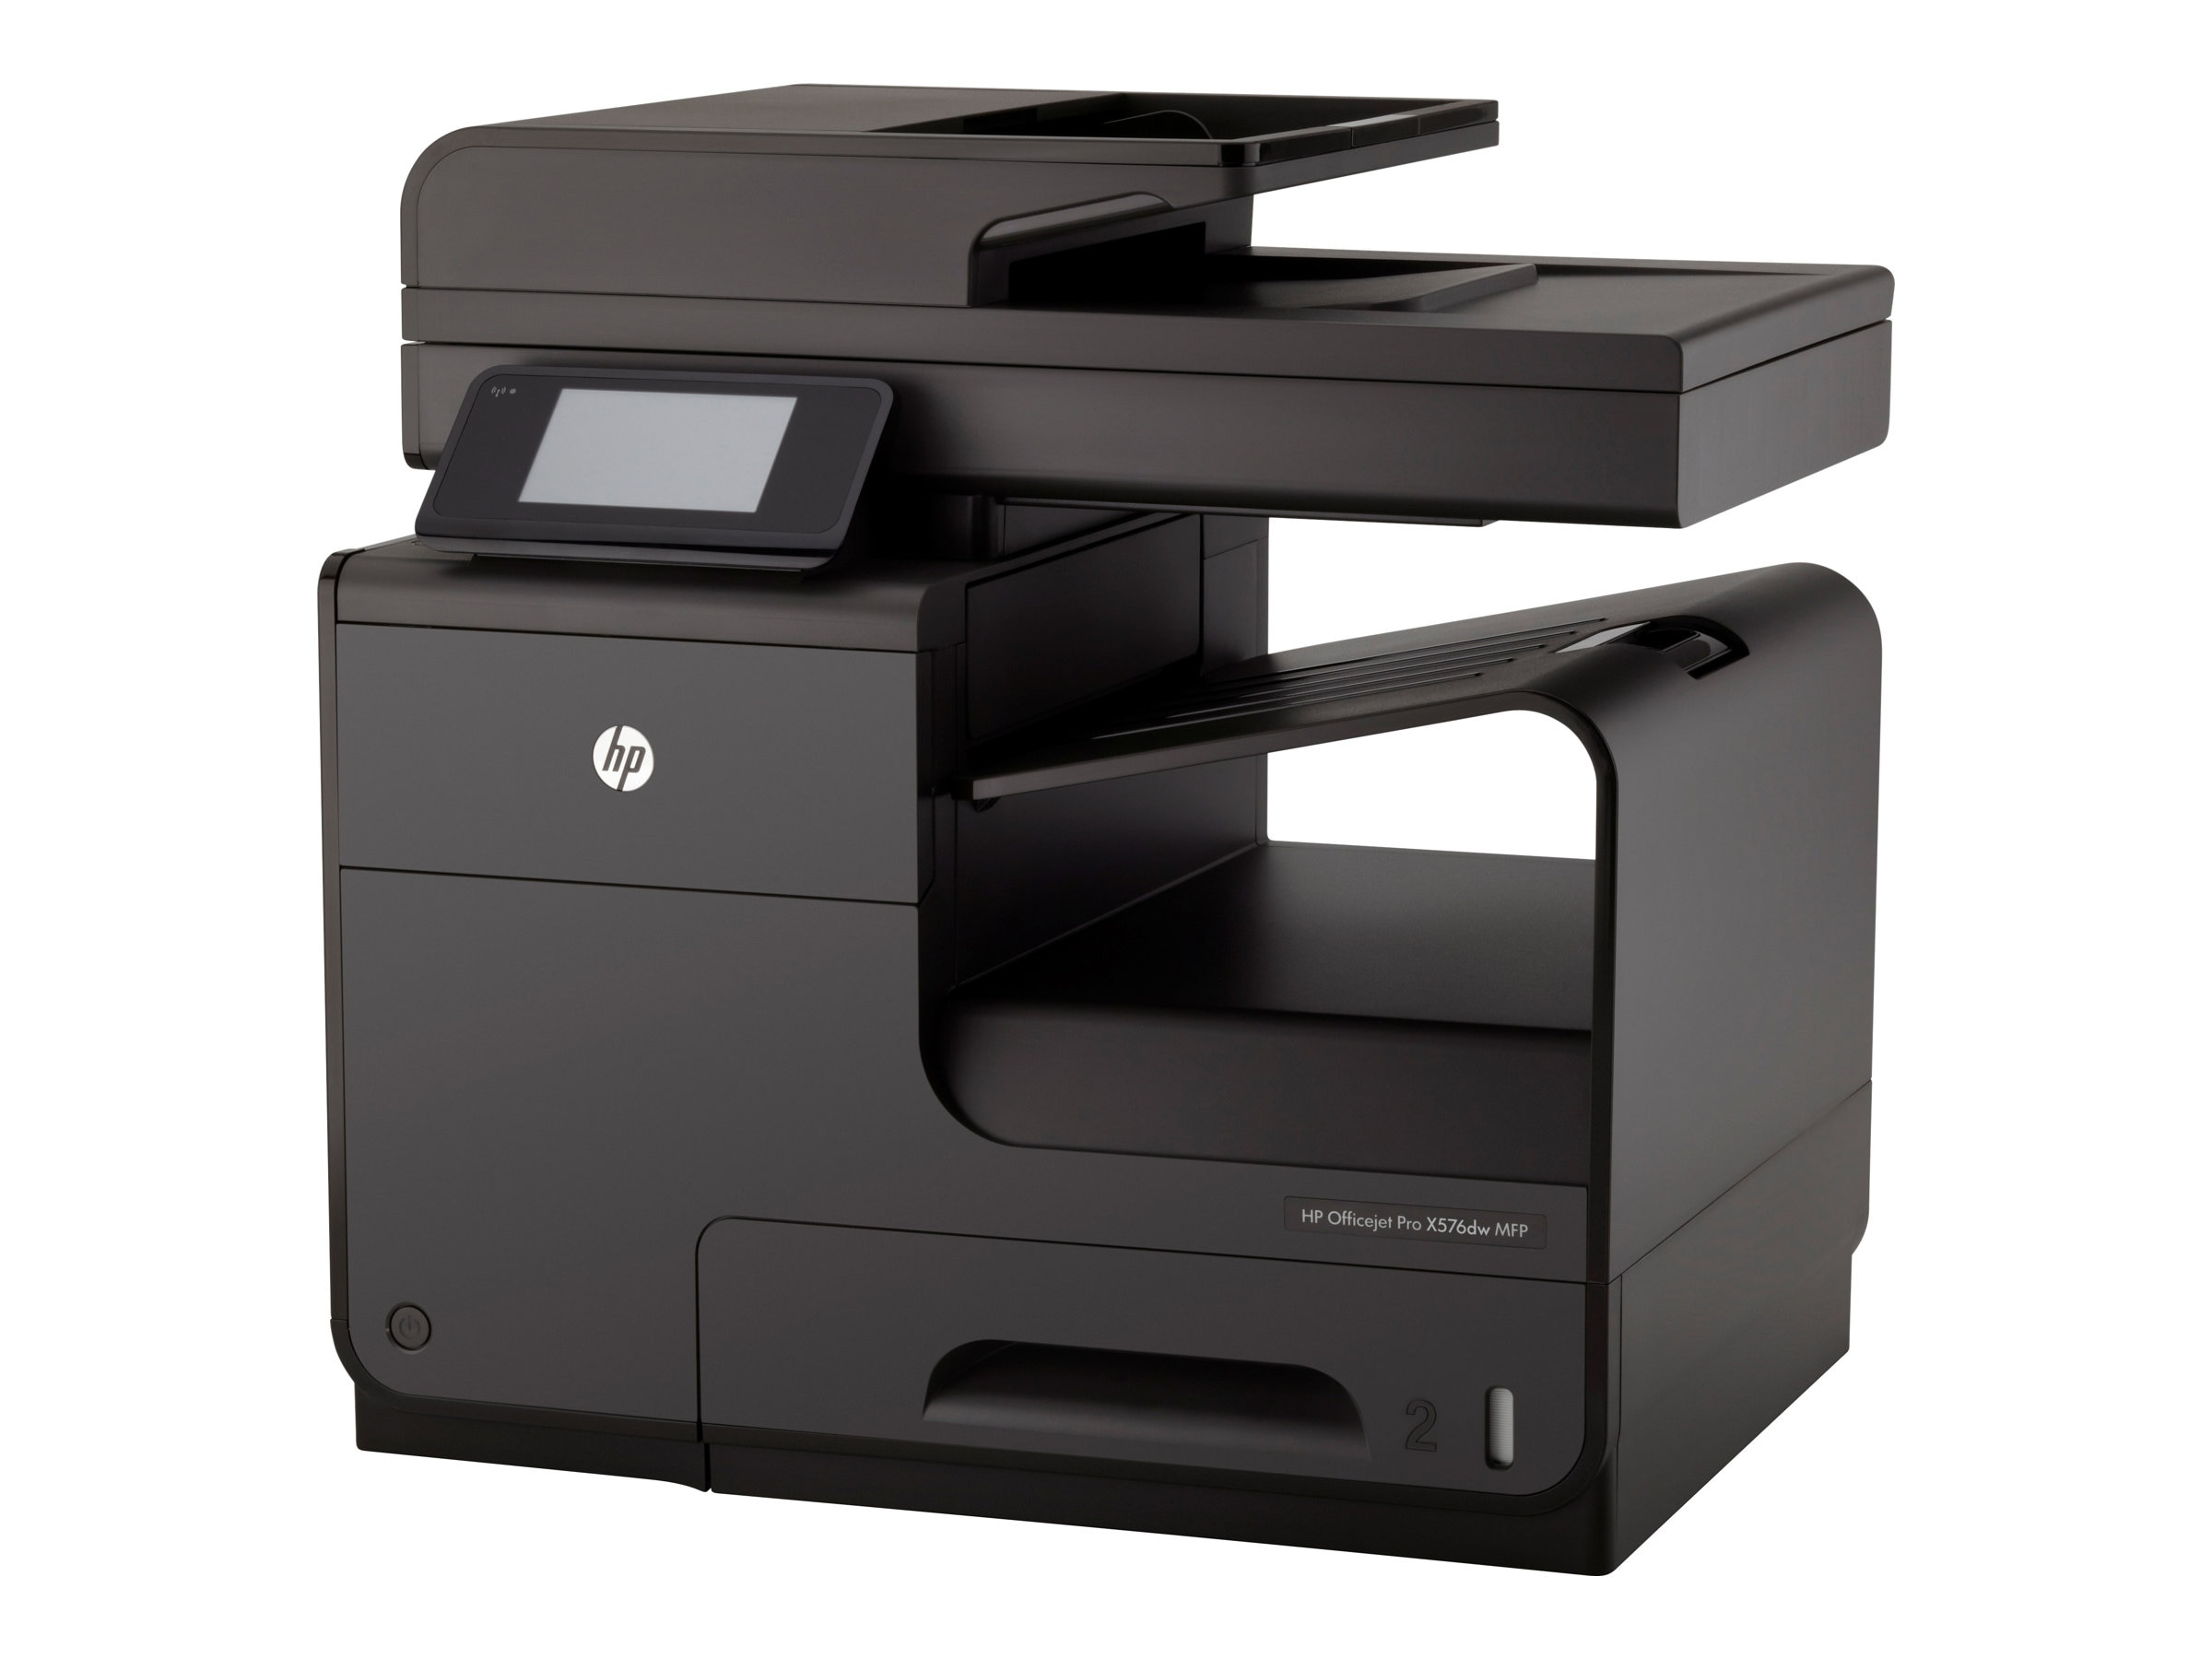 HP Officejet Pro X Series X576dw Color MFP $799 - $200 instant rebate = $599 Expires 12 31 2015